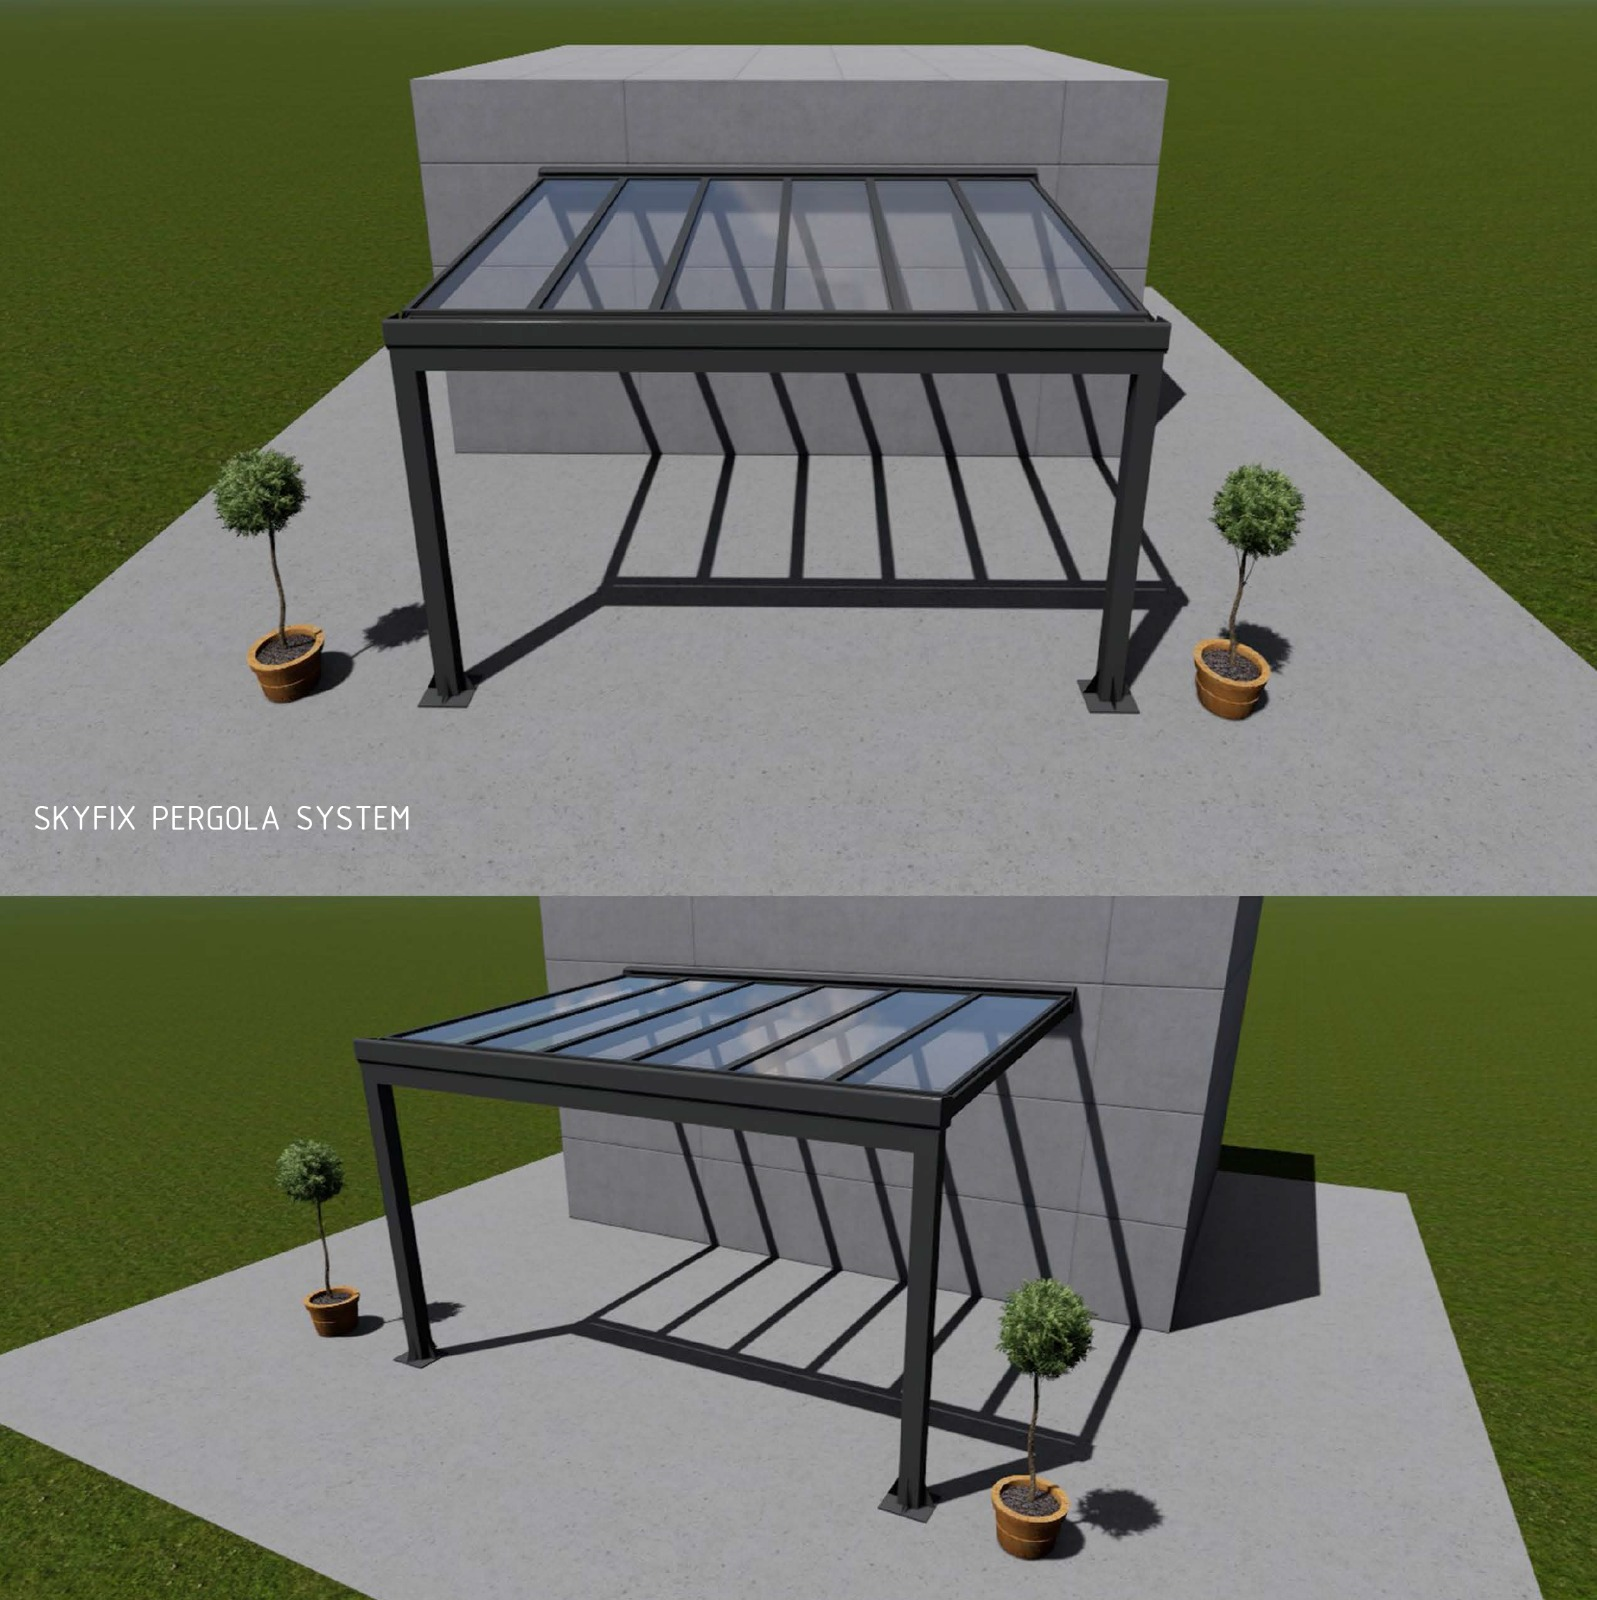 Glass Winter Garden Structures Outdoor Heating Parasols External Venetian Retractable Motorised Roof Pergola Awning London Commercial Architecture Outdoor